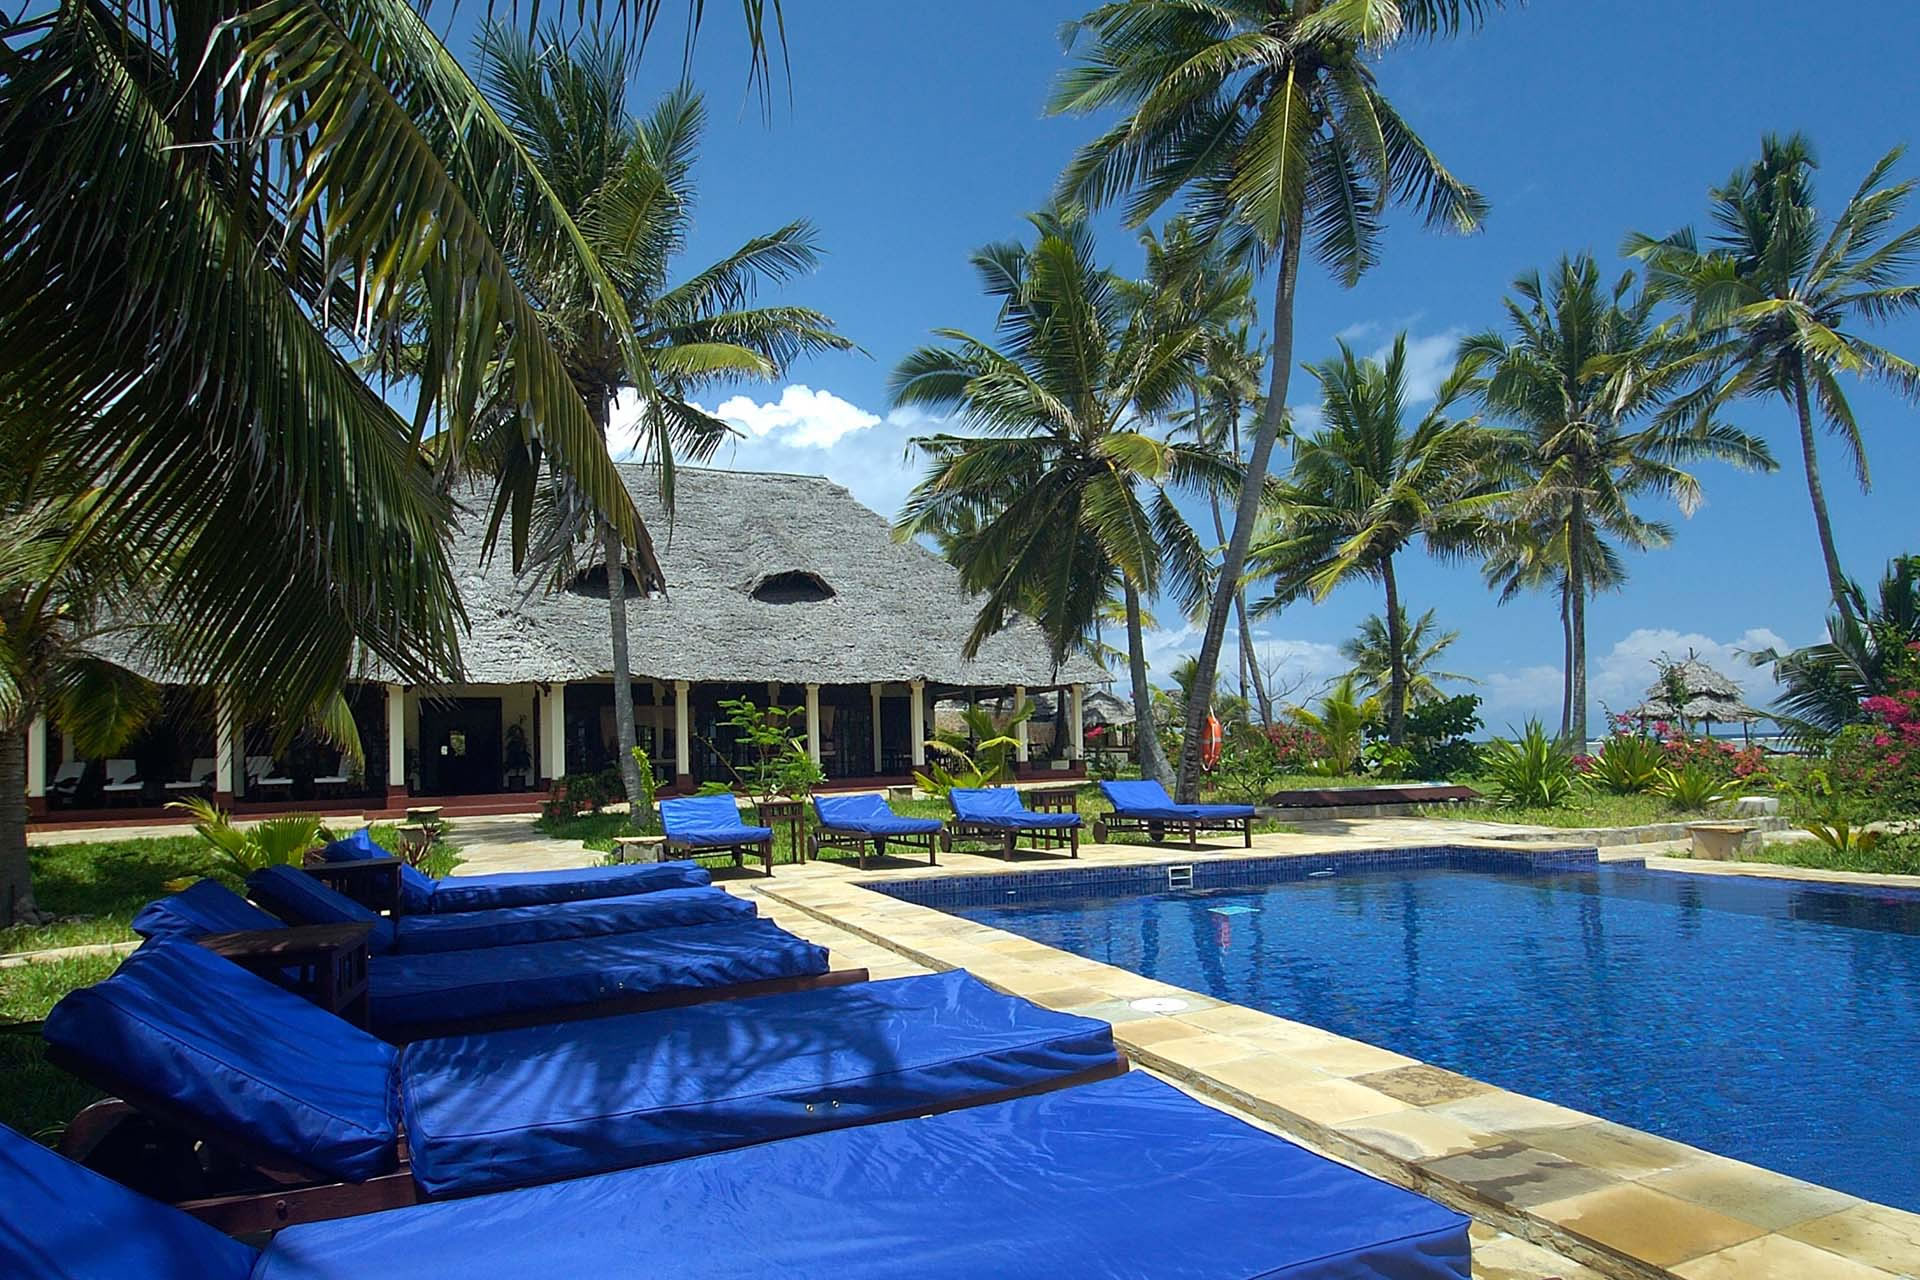 The Palms, Zanzibar pool